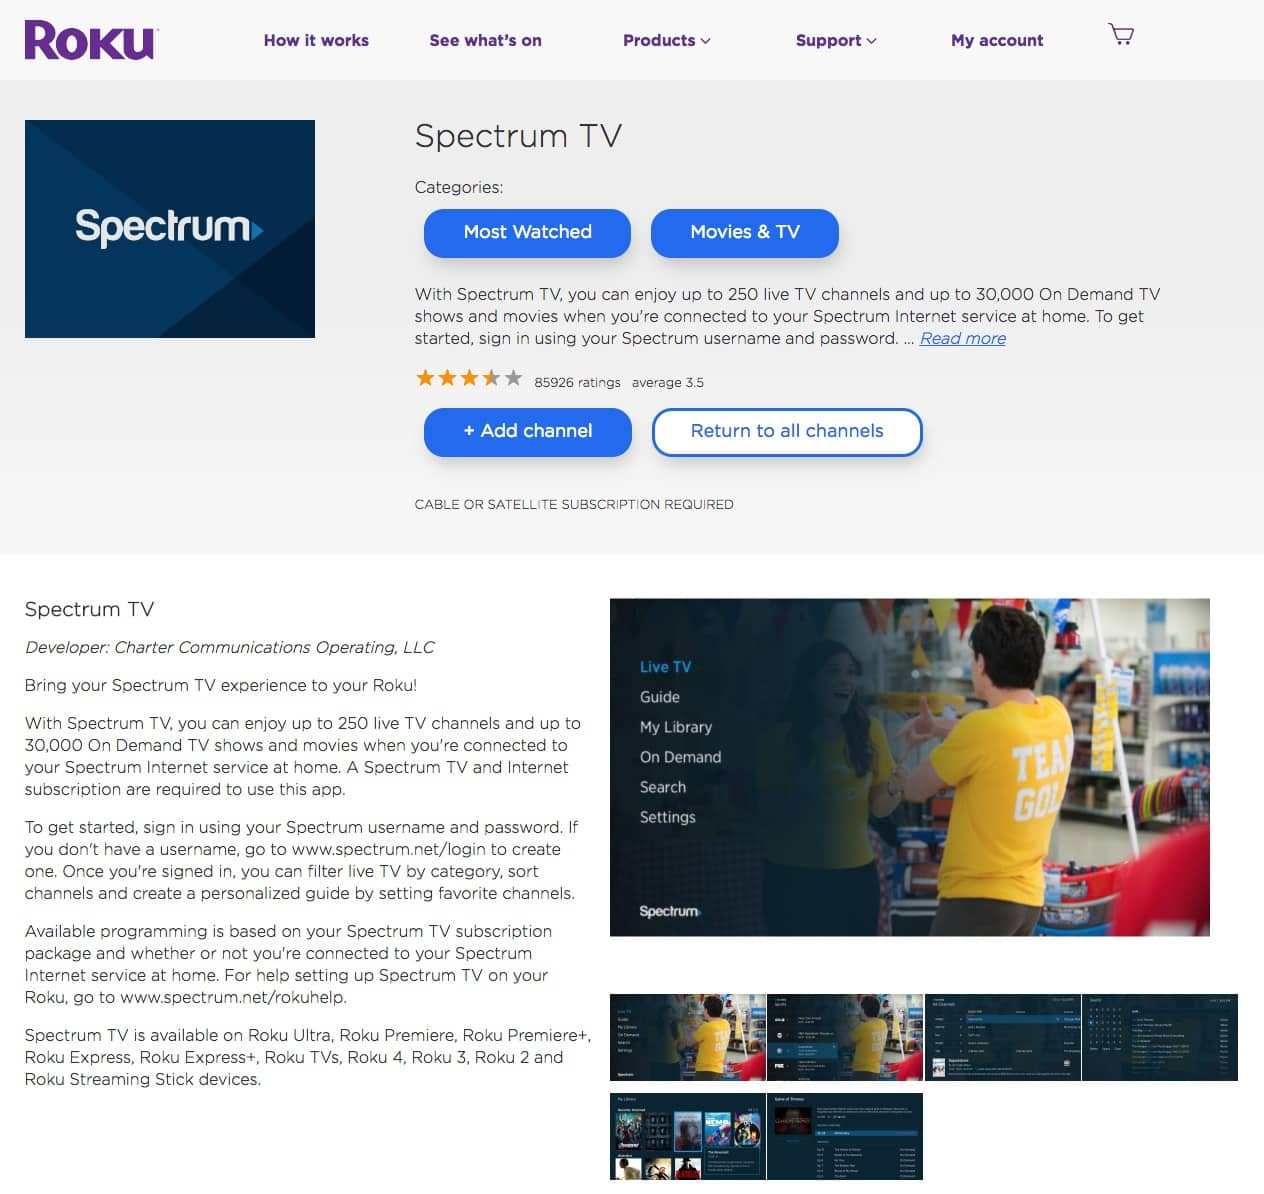 Spectrum TV - Dave Chung - Content Strategist & UX Writer in